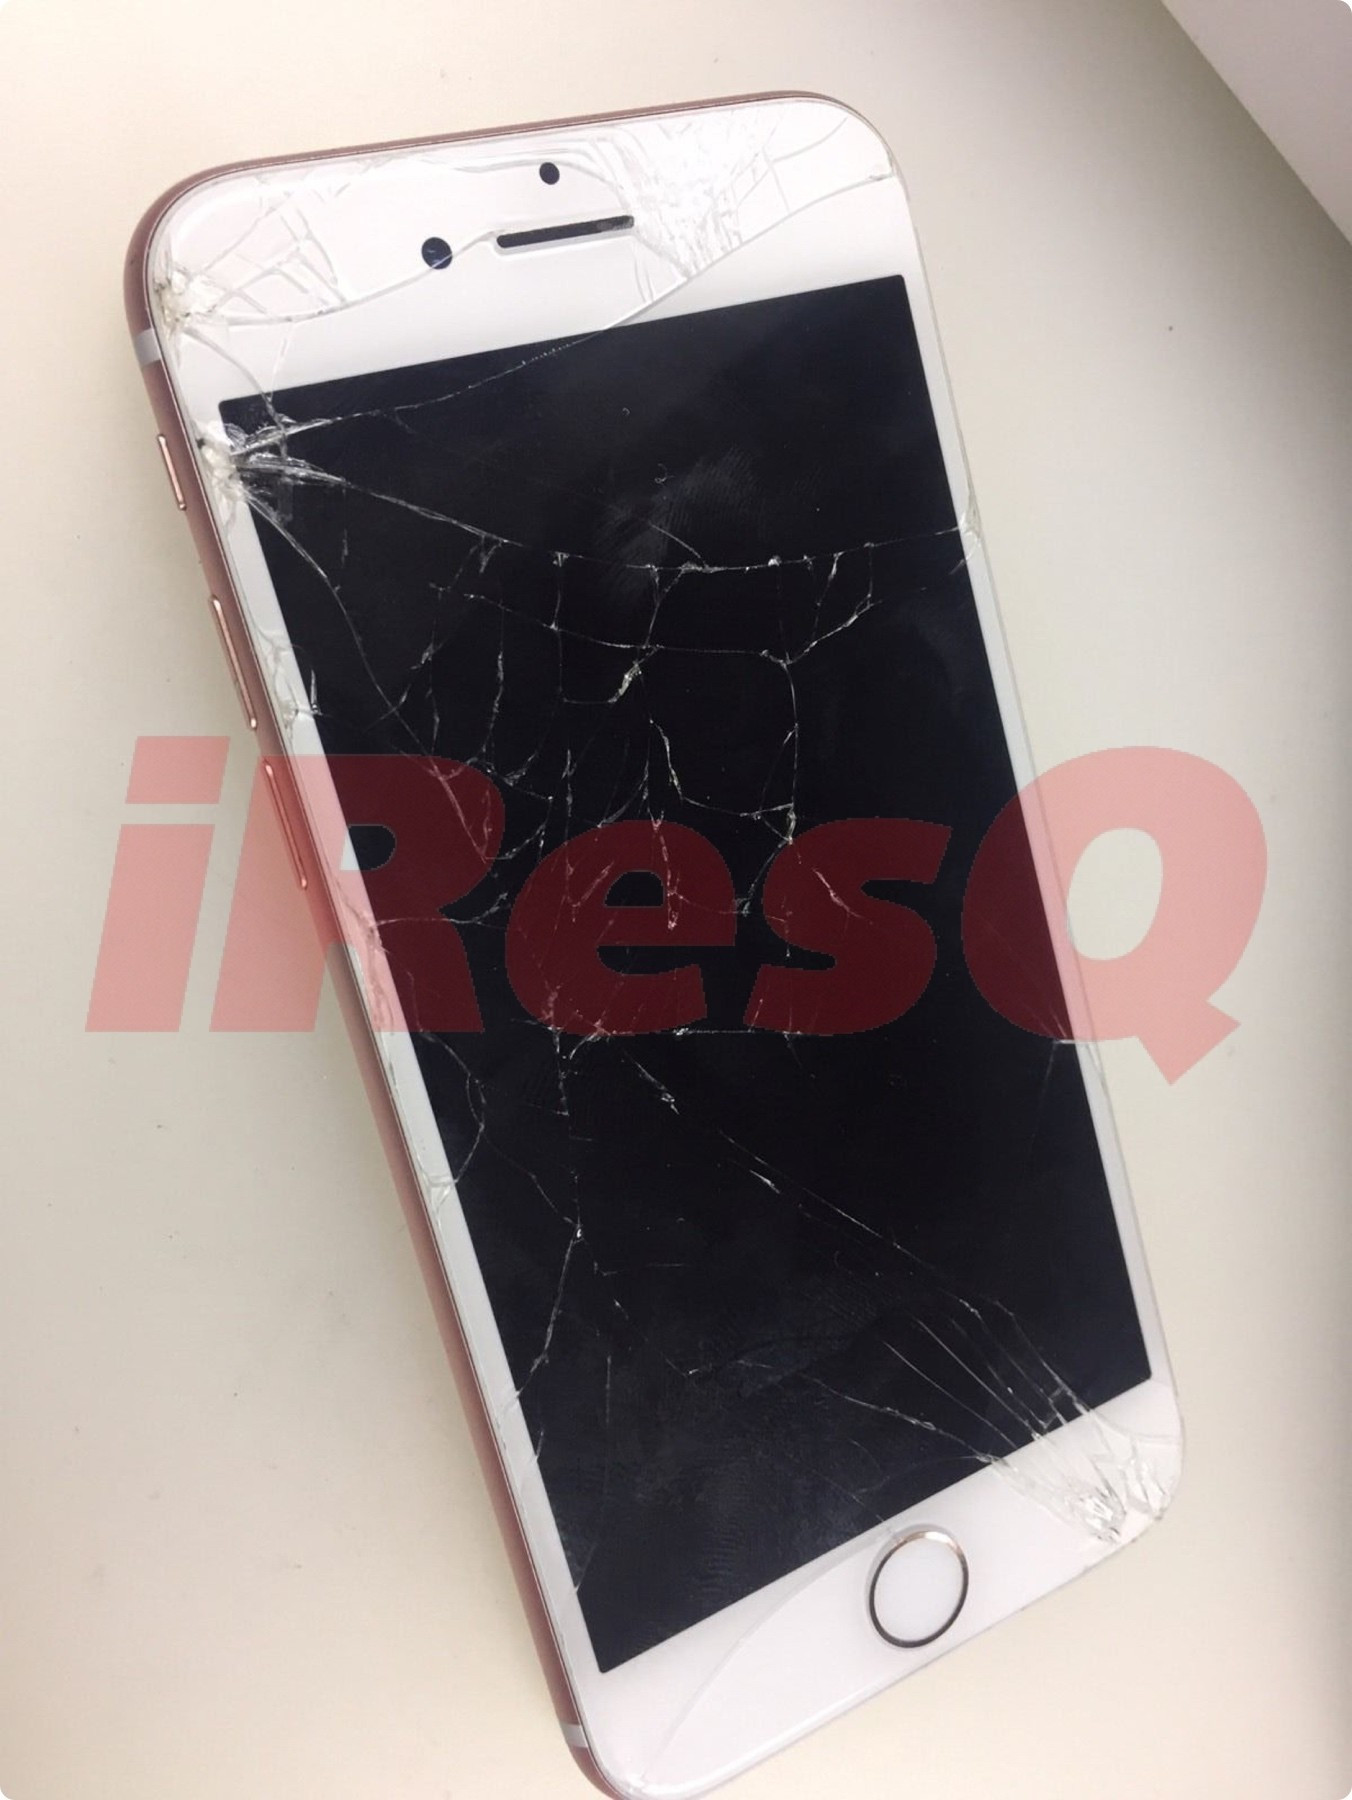 iphone 7 broken front glass retina display lcd and digitizer repair replacement service